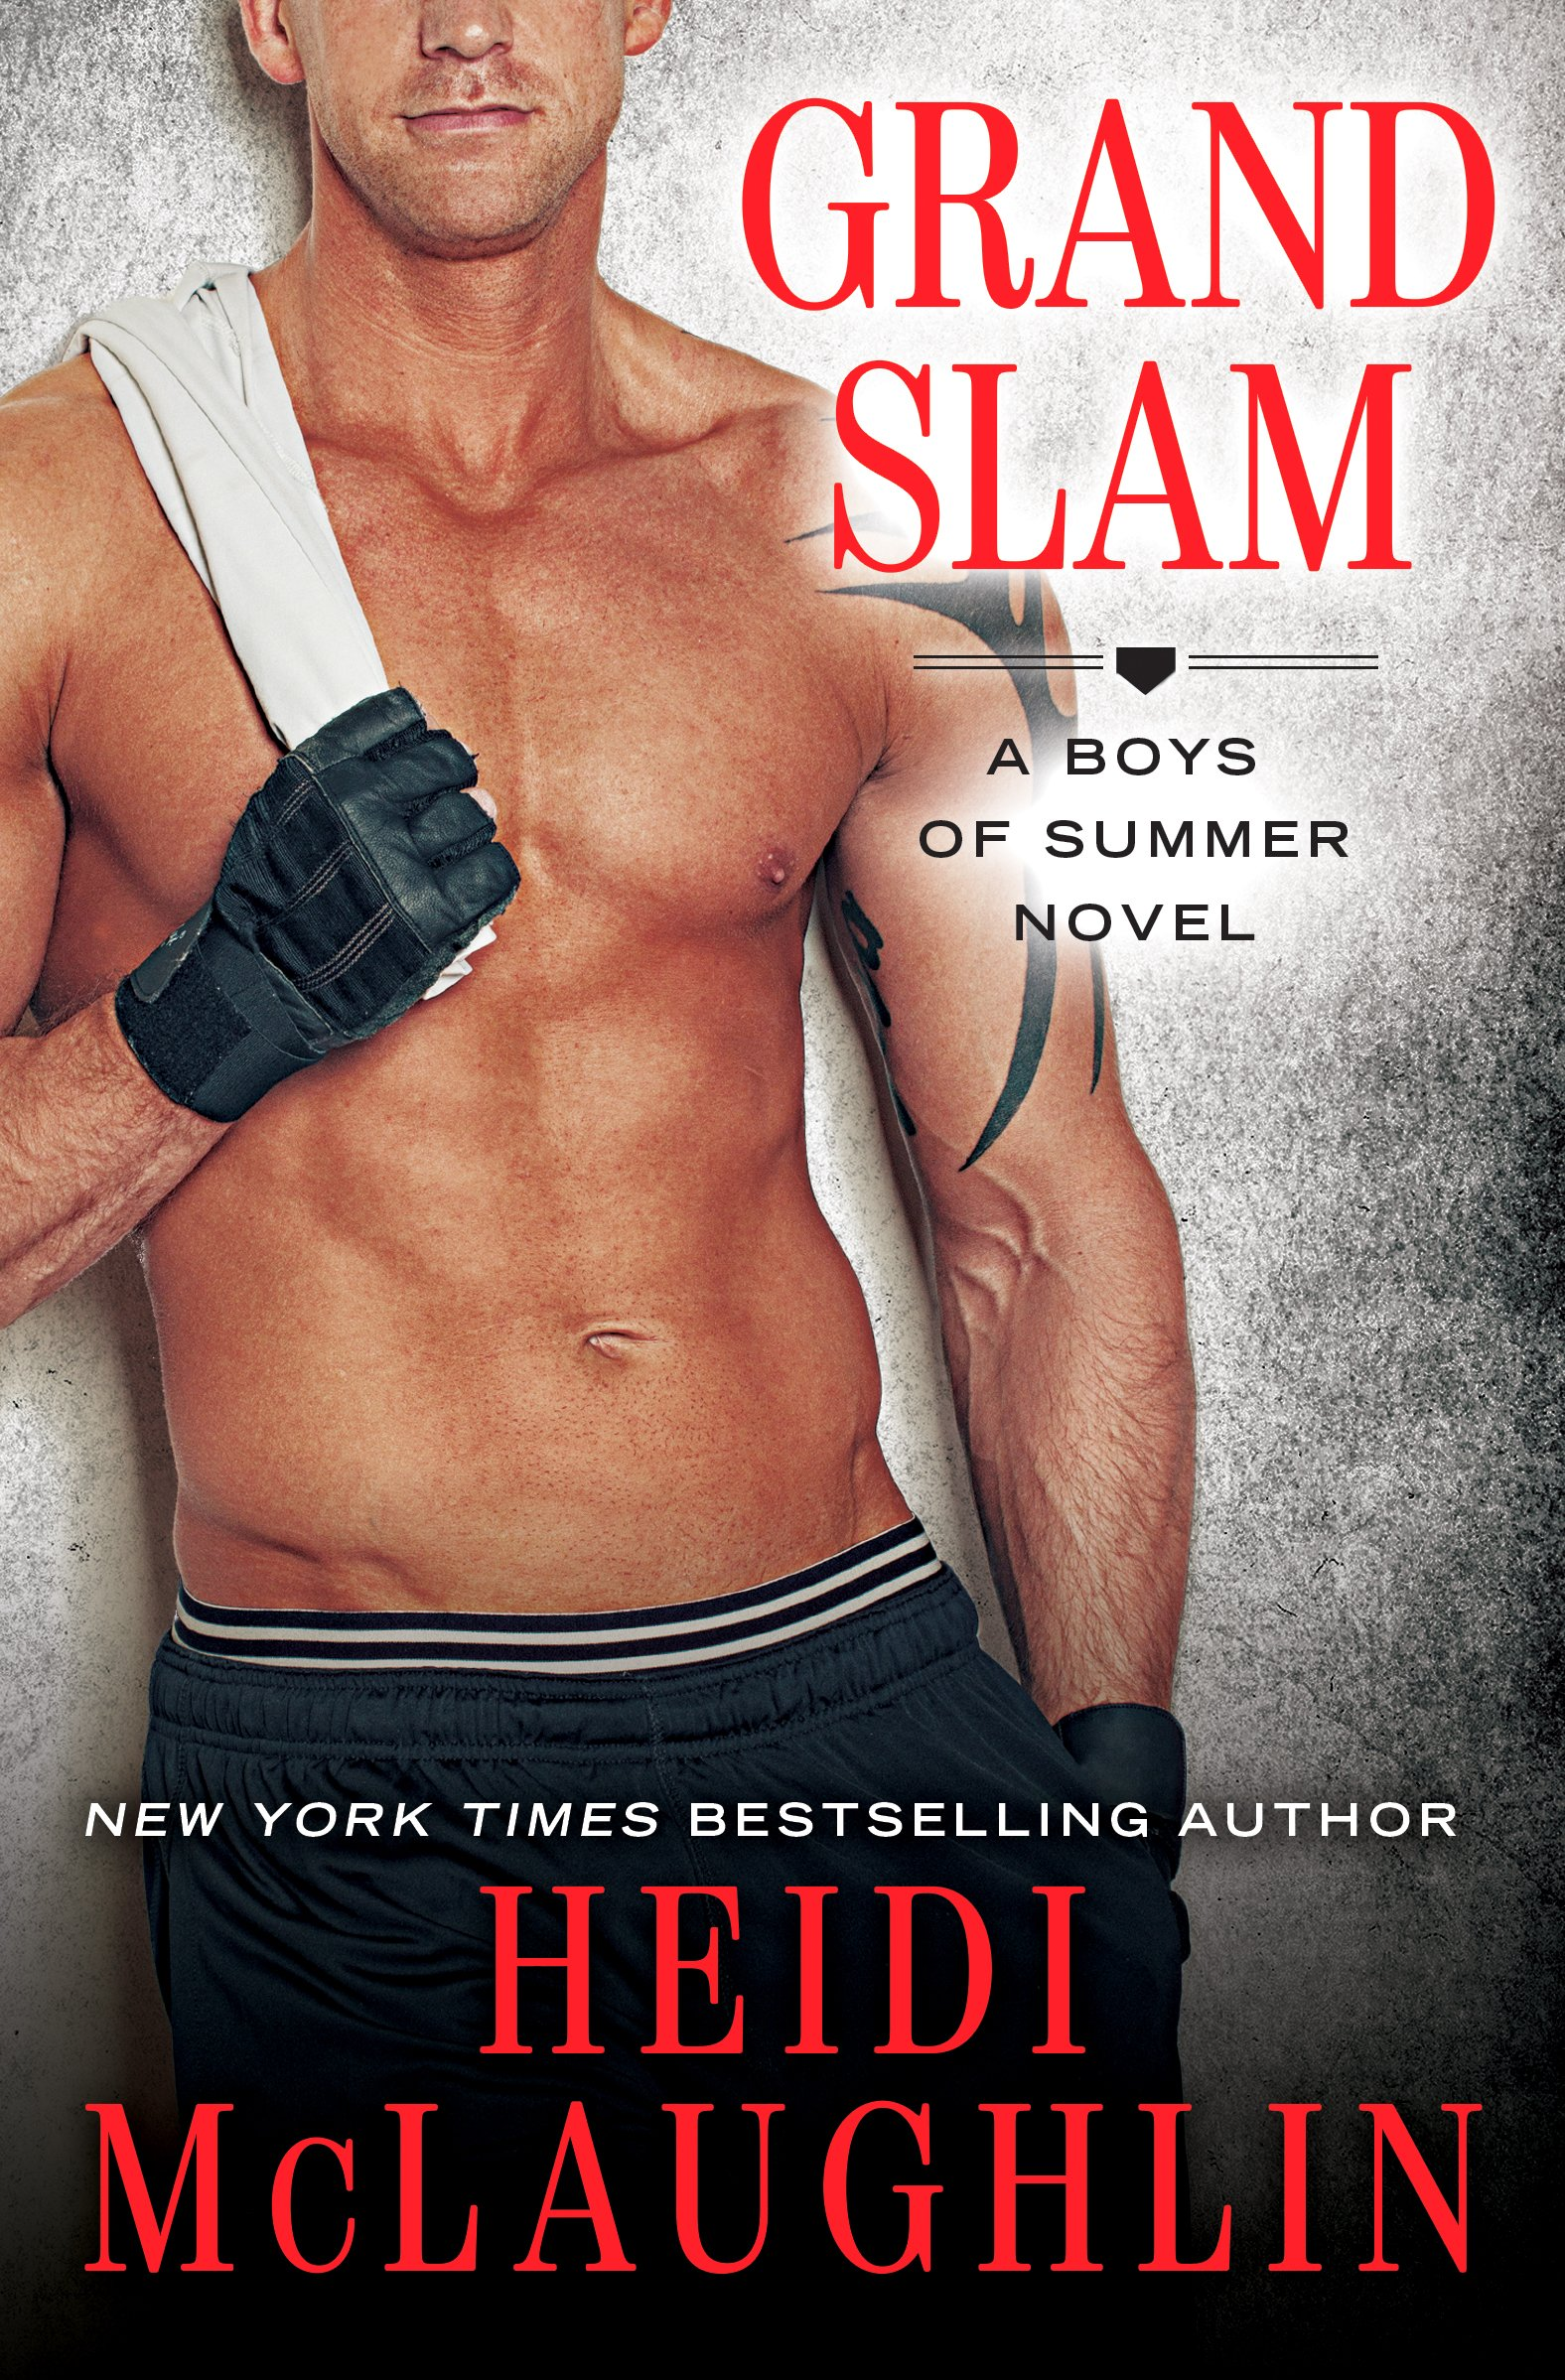 Grand Slam by Heidi McLaughlin